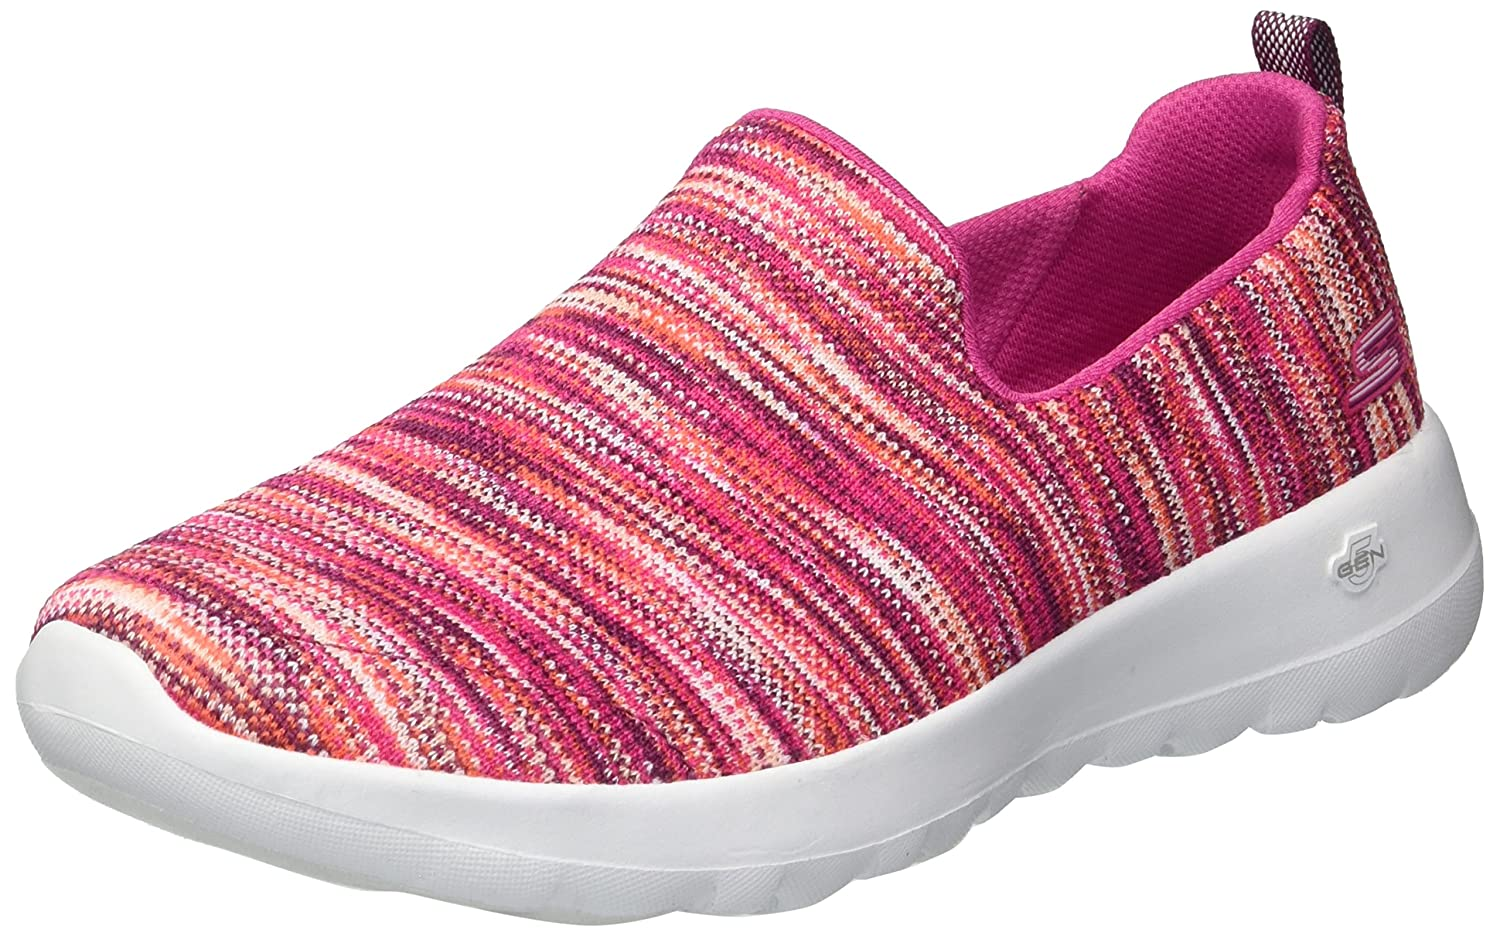 Skechers Women's Go Walk Joy-15615 Wide Sneaker B07537BSWY 9 W US|Pink/Multi